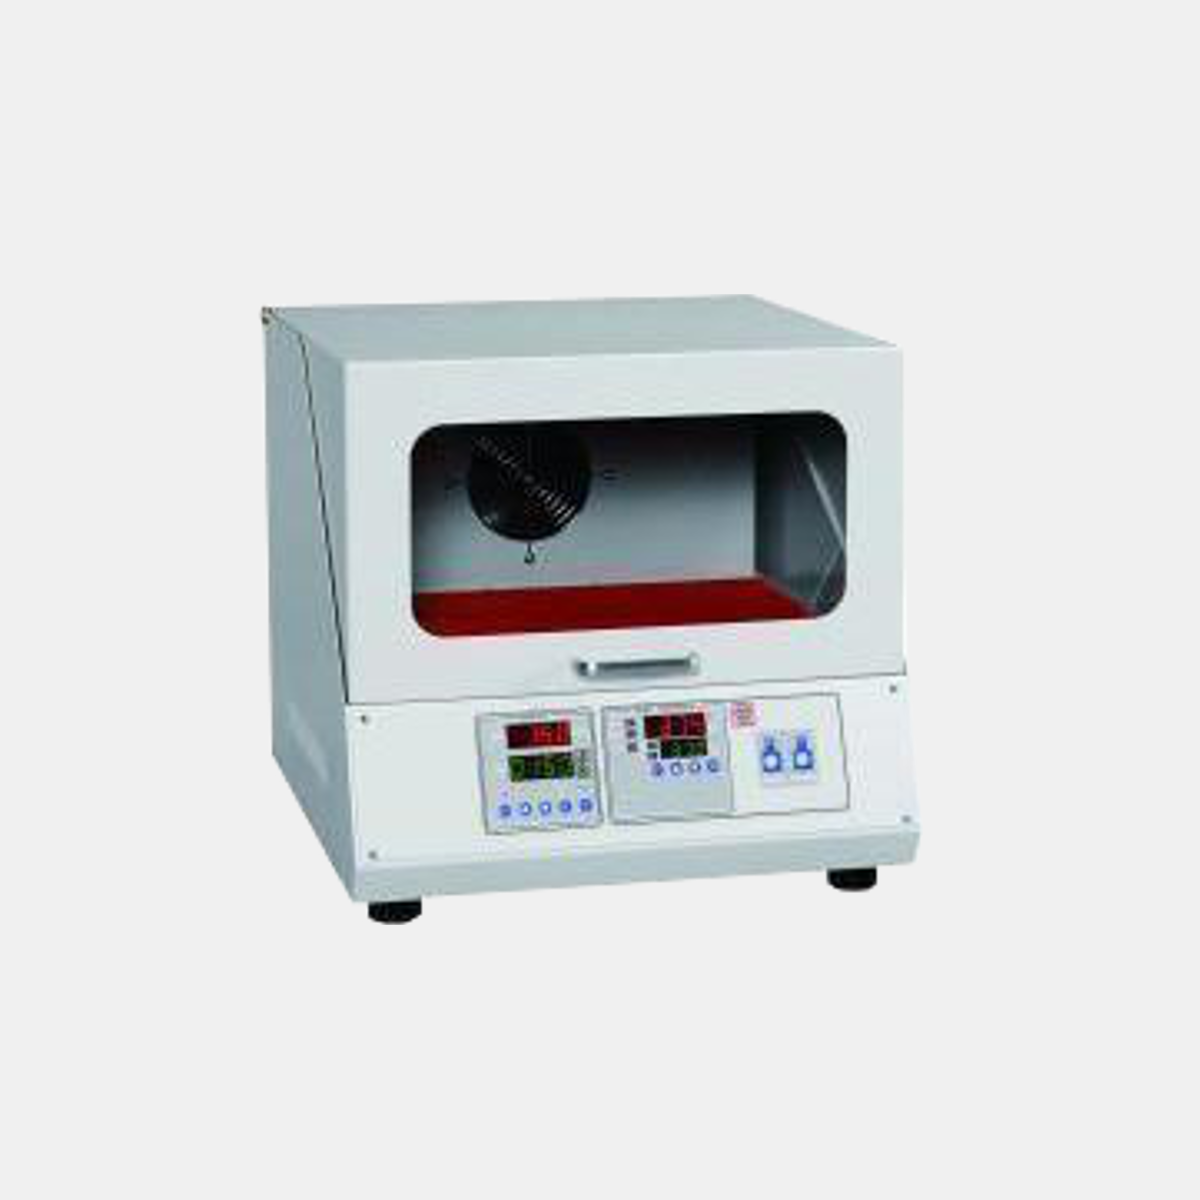 Shaking Incubator – Orbital – Bench Top Heat Only (Up to +70ºC)